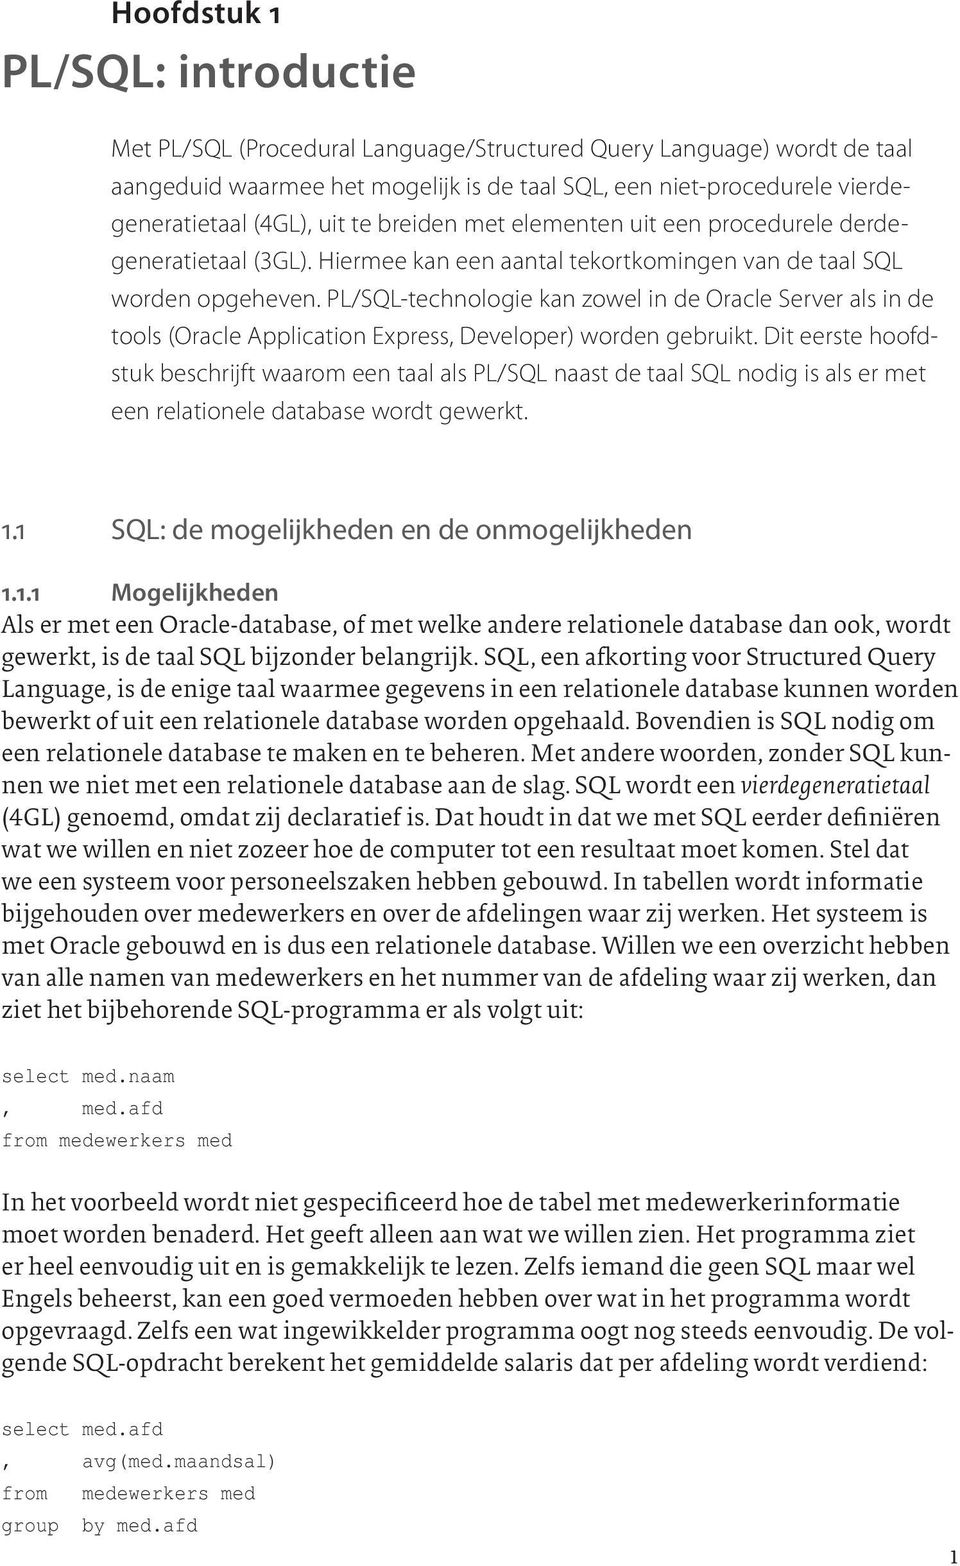 PL/SQL-technologie kan zowel in de Oracle Server als in de tools (Oracle Application Express, Developer) worden gebruikt.